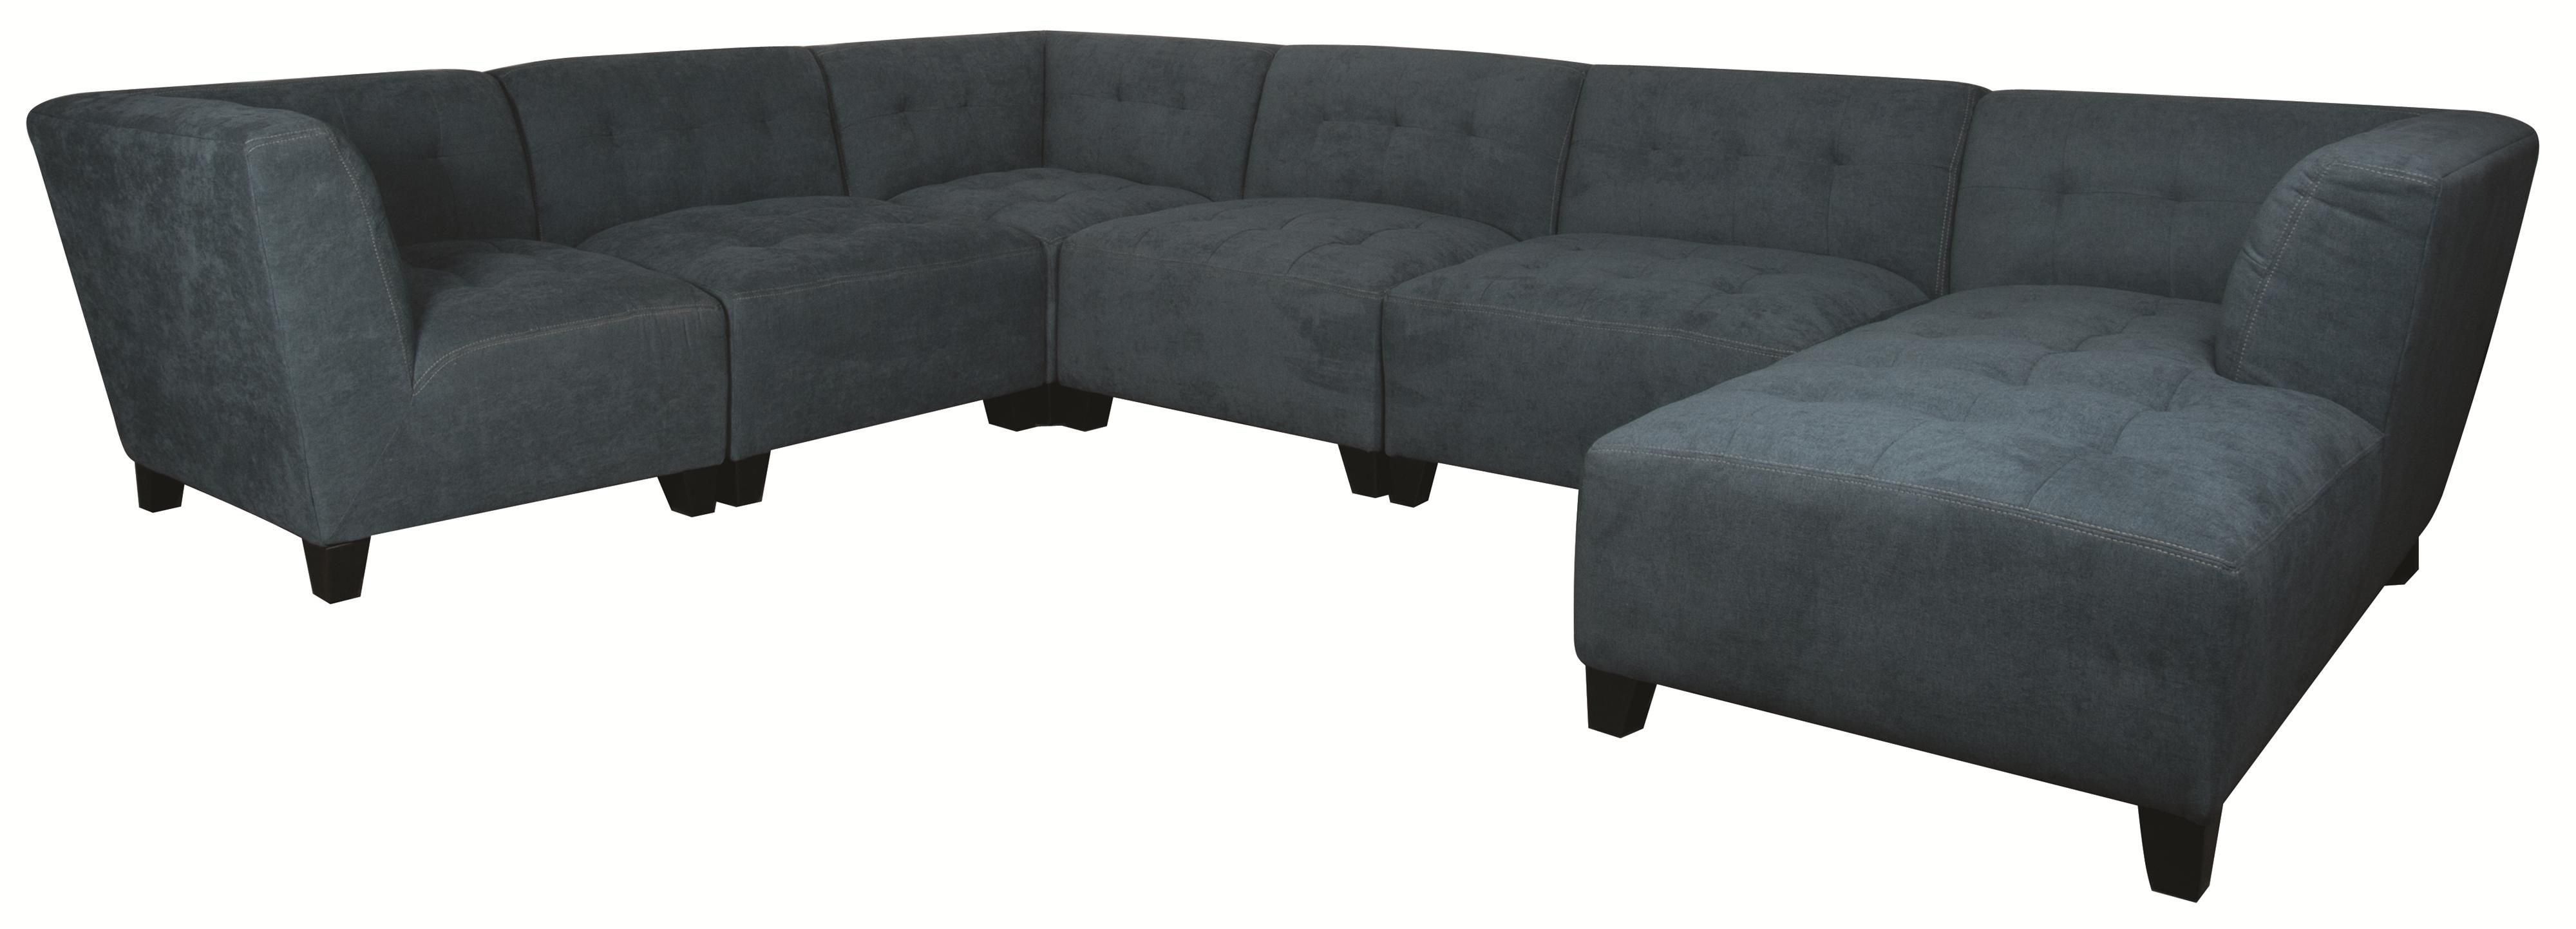 Ordinaire Emerson 6 Piece Sectional Sofa   Morris Home Furnishings   Sofa Sectional  Dayton, Cincinnati, Columbus, Ohio I Would Want A Diff Color But I Like  That It: ...